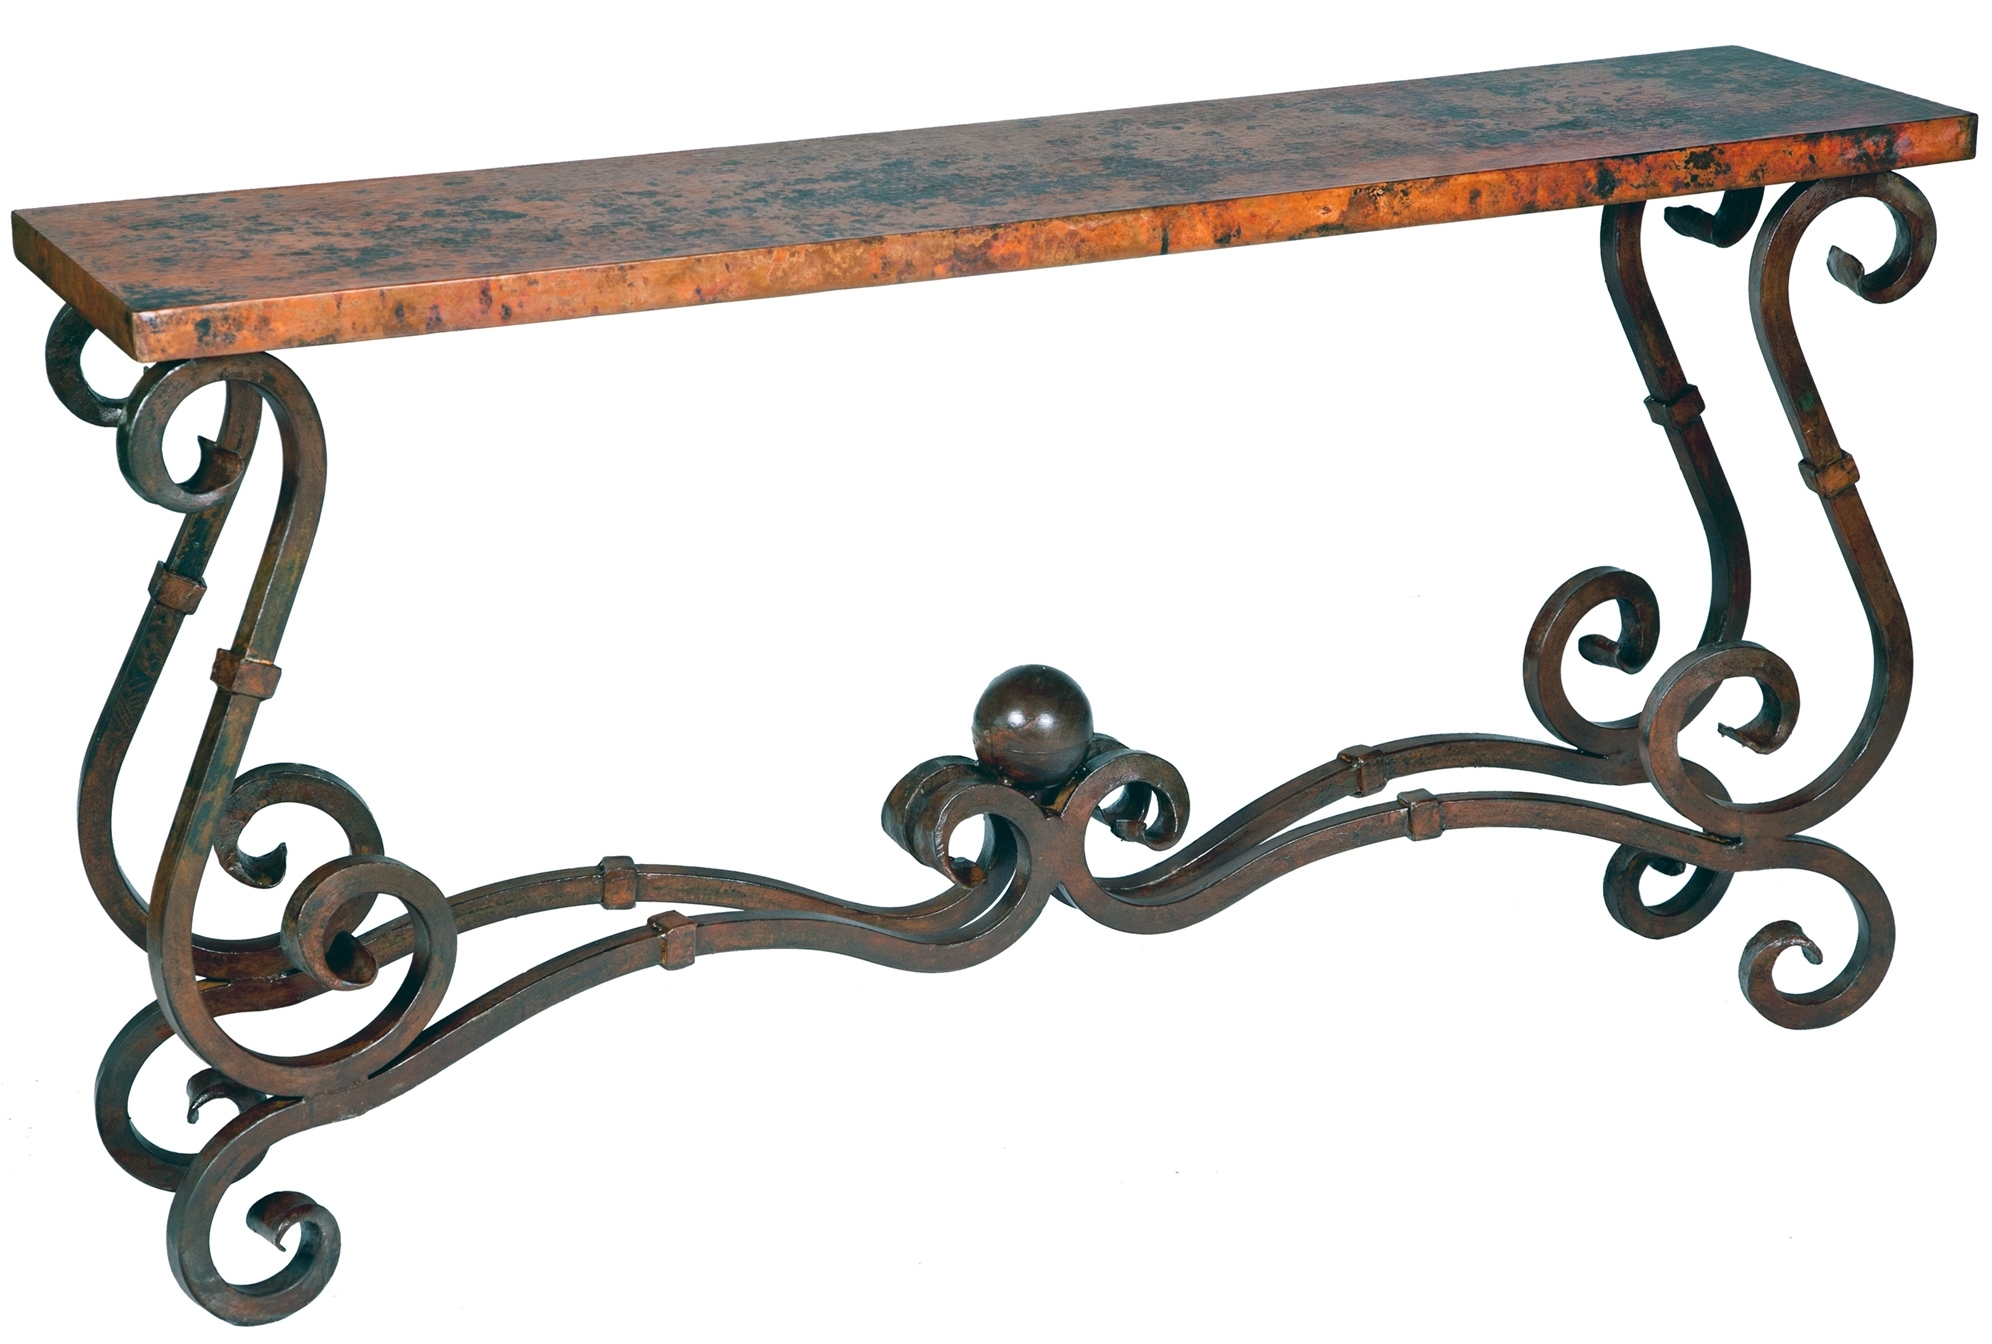 Stunning Copper & Wrought Iron Furniture by Prima